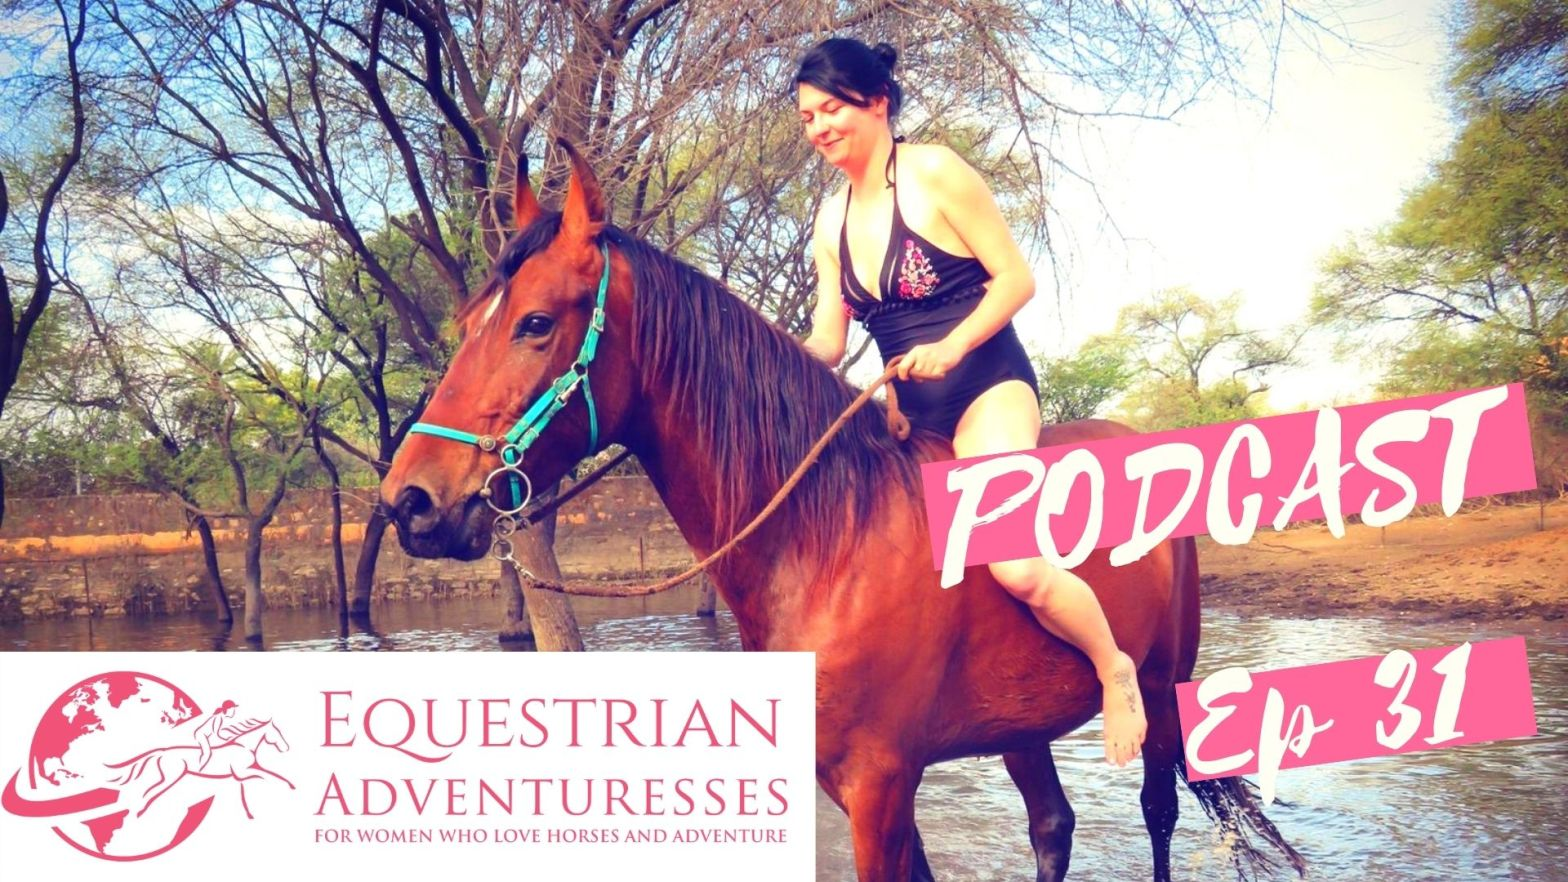 Equestrian Adventuresses Travel and Horse Podcast Ep 31 - Against the odds - a young woman's struggle with fate